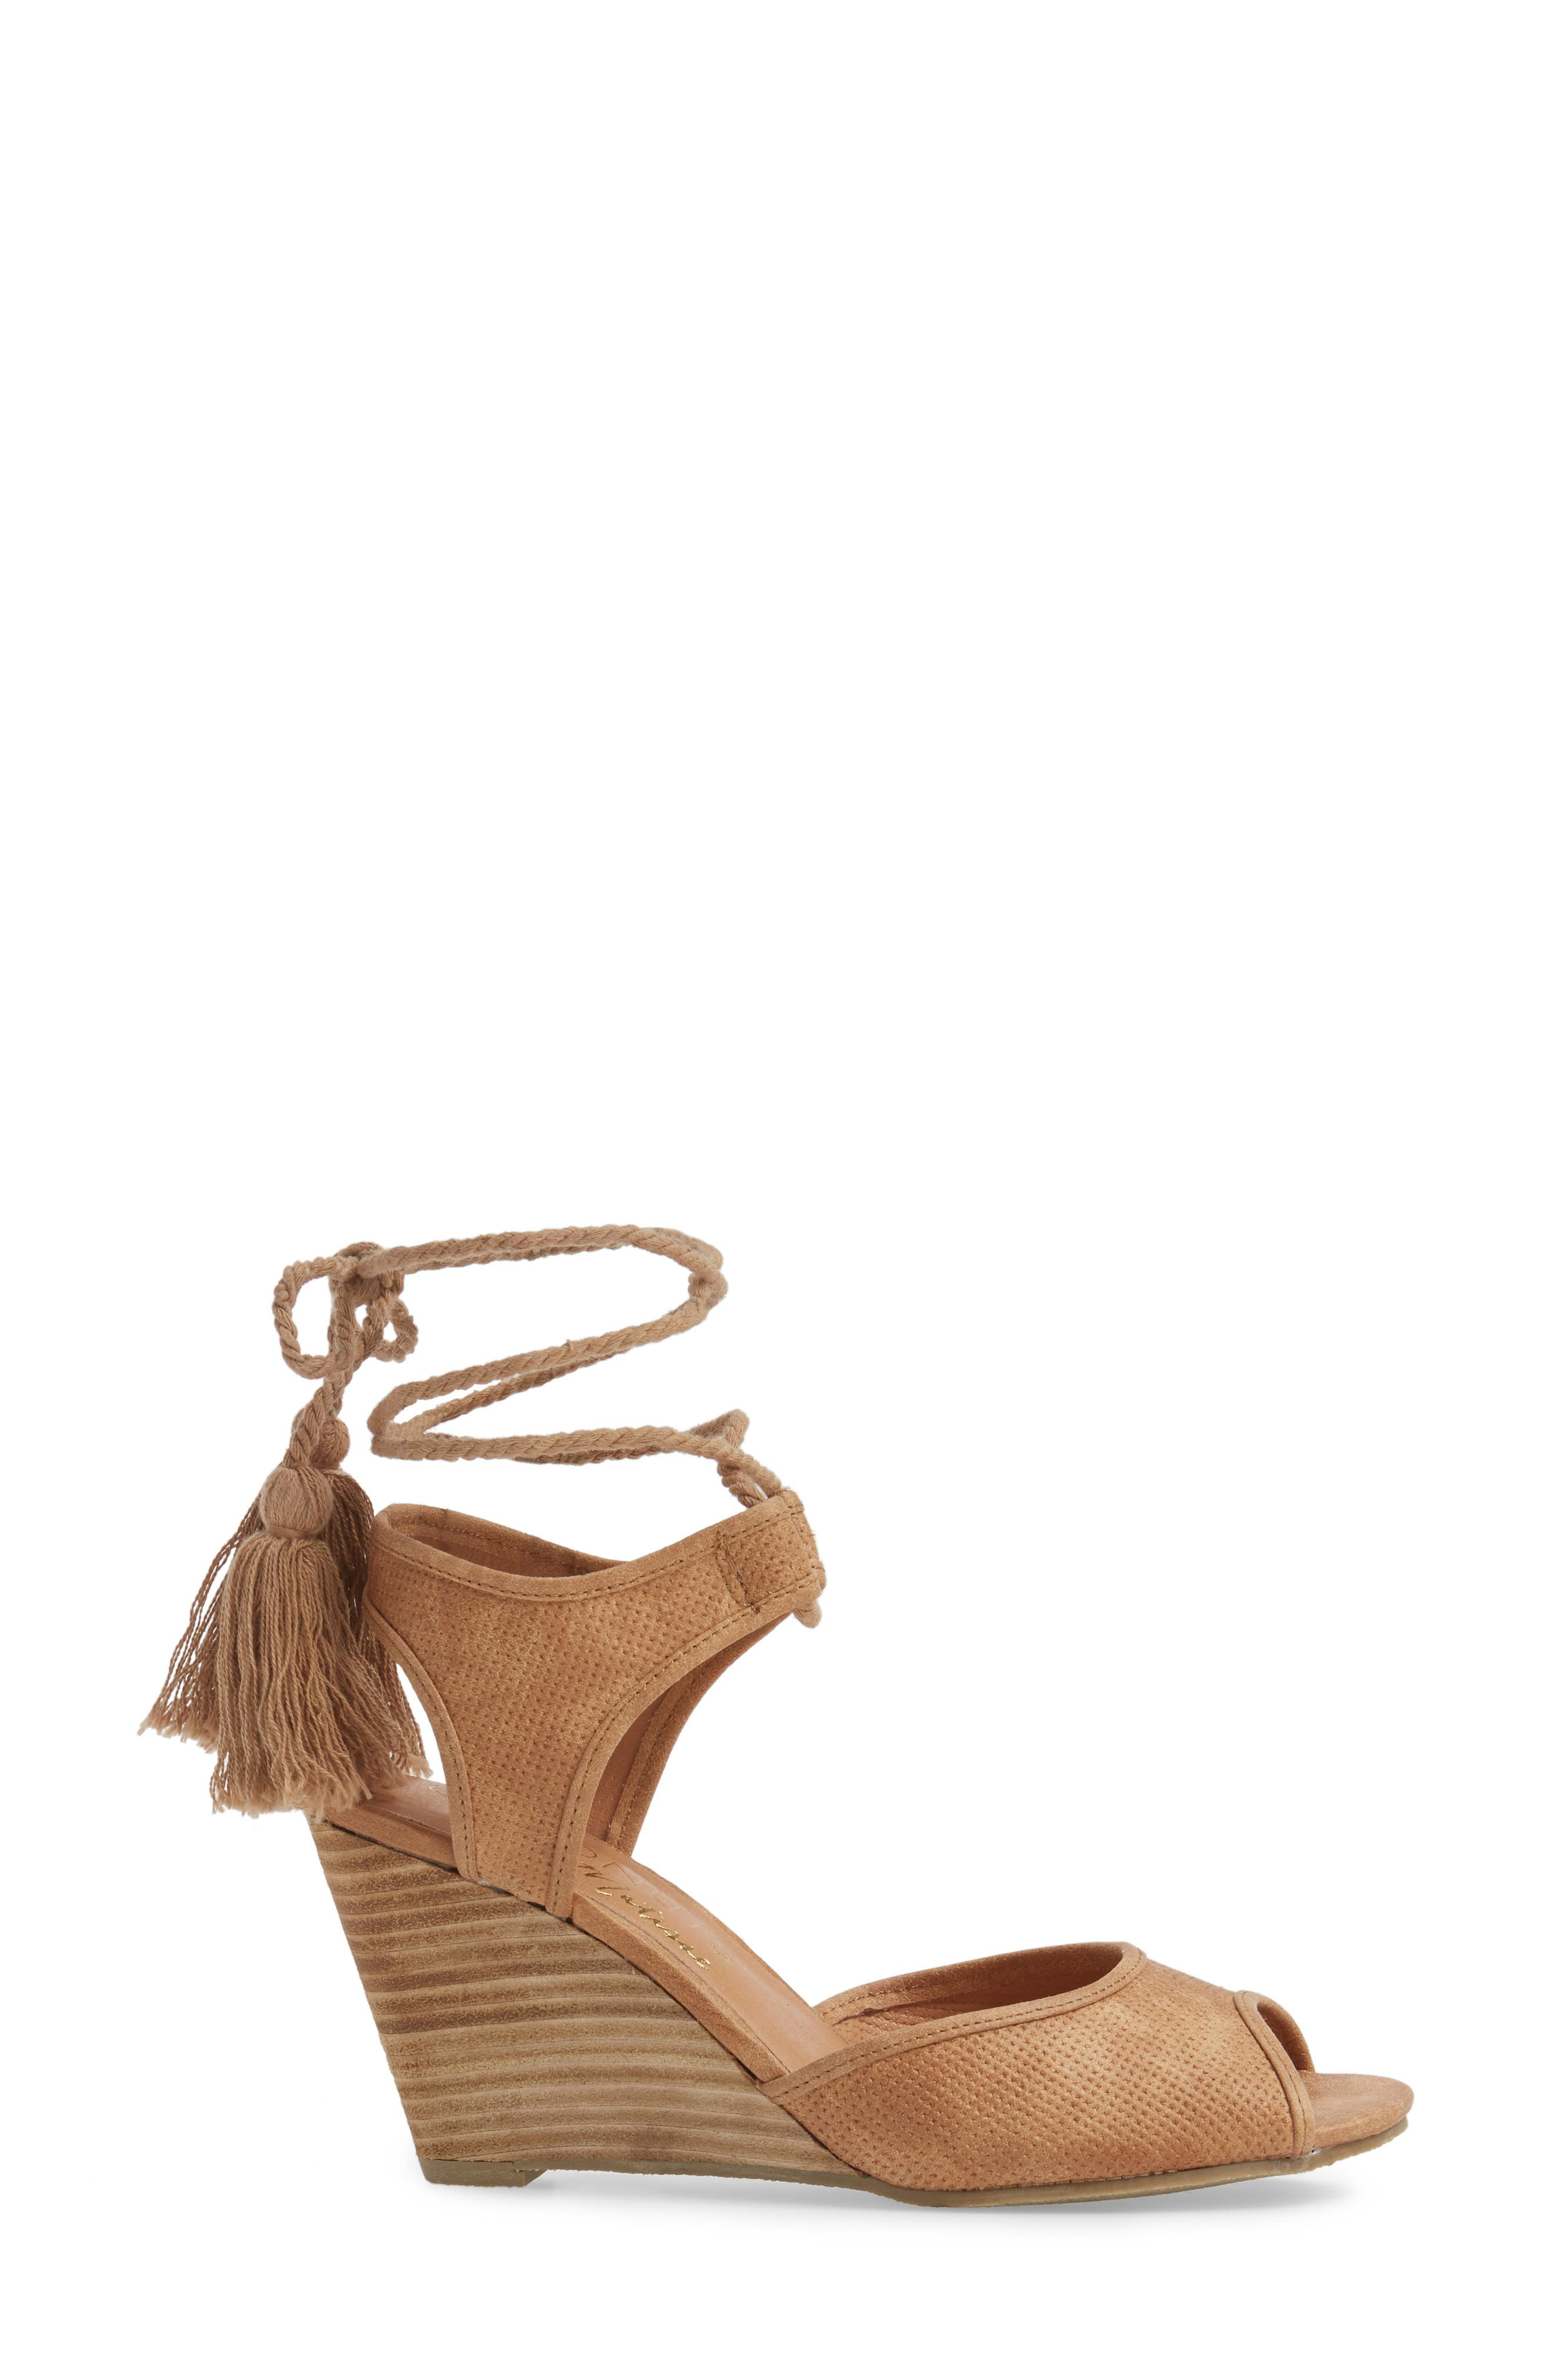 Coconuts by Matisse Unify Wedge Sandal,                             Alternate thumbnail 3, color,                             255